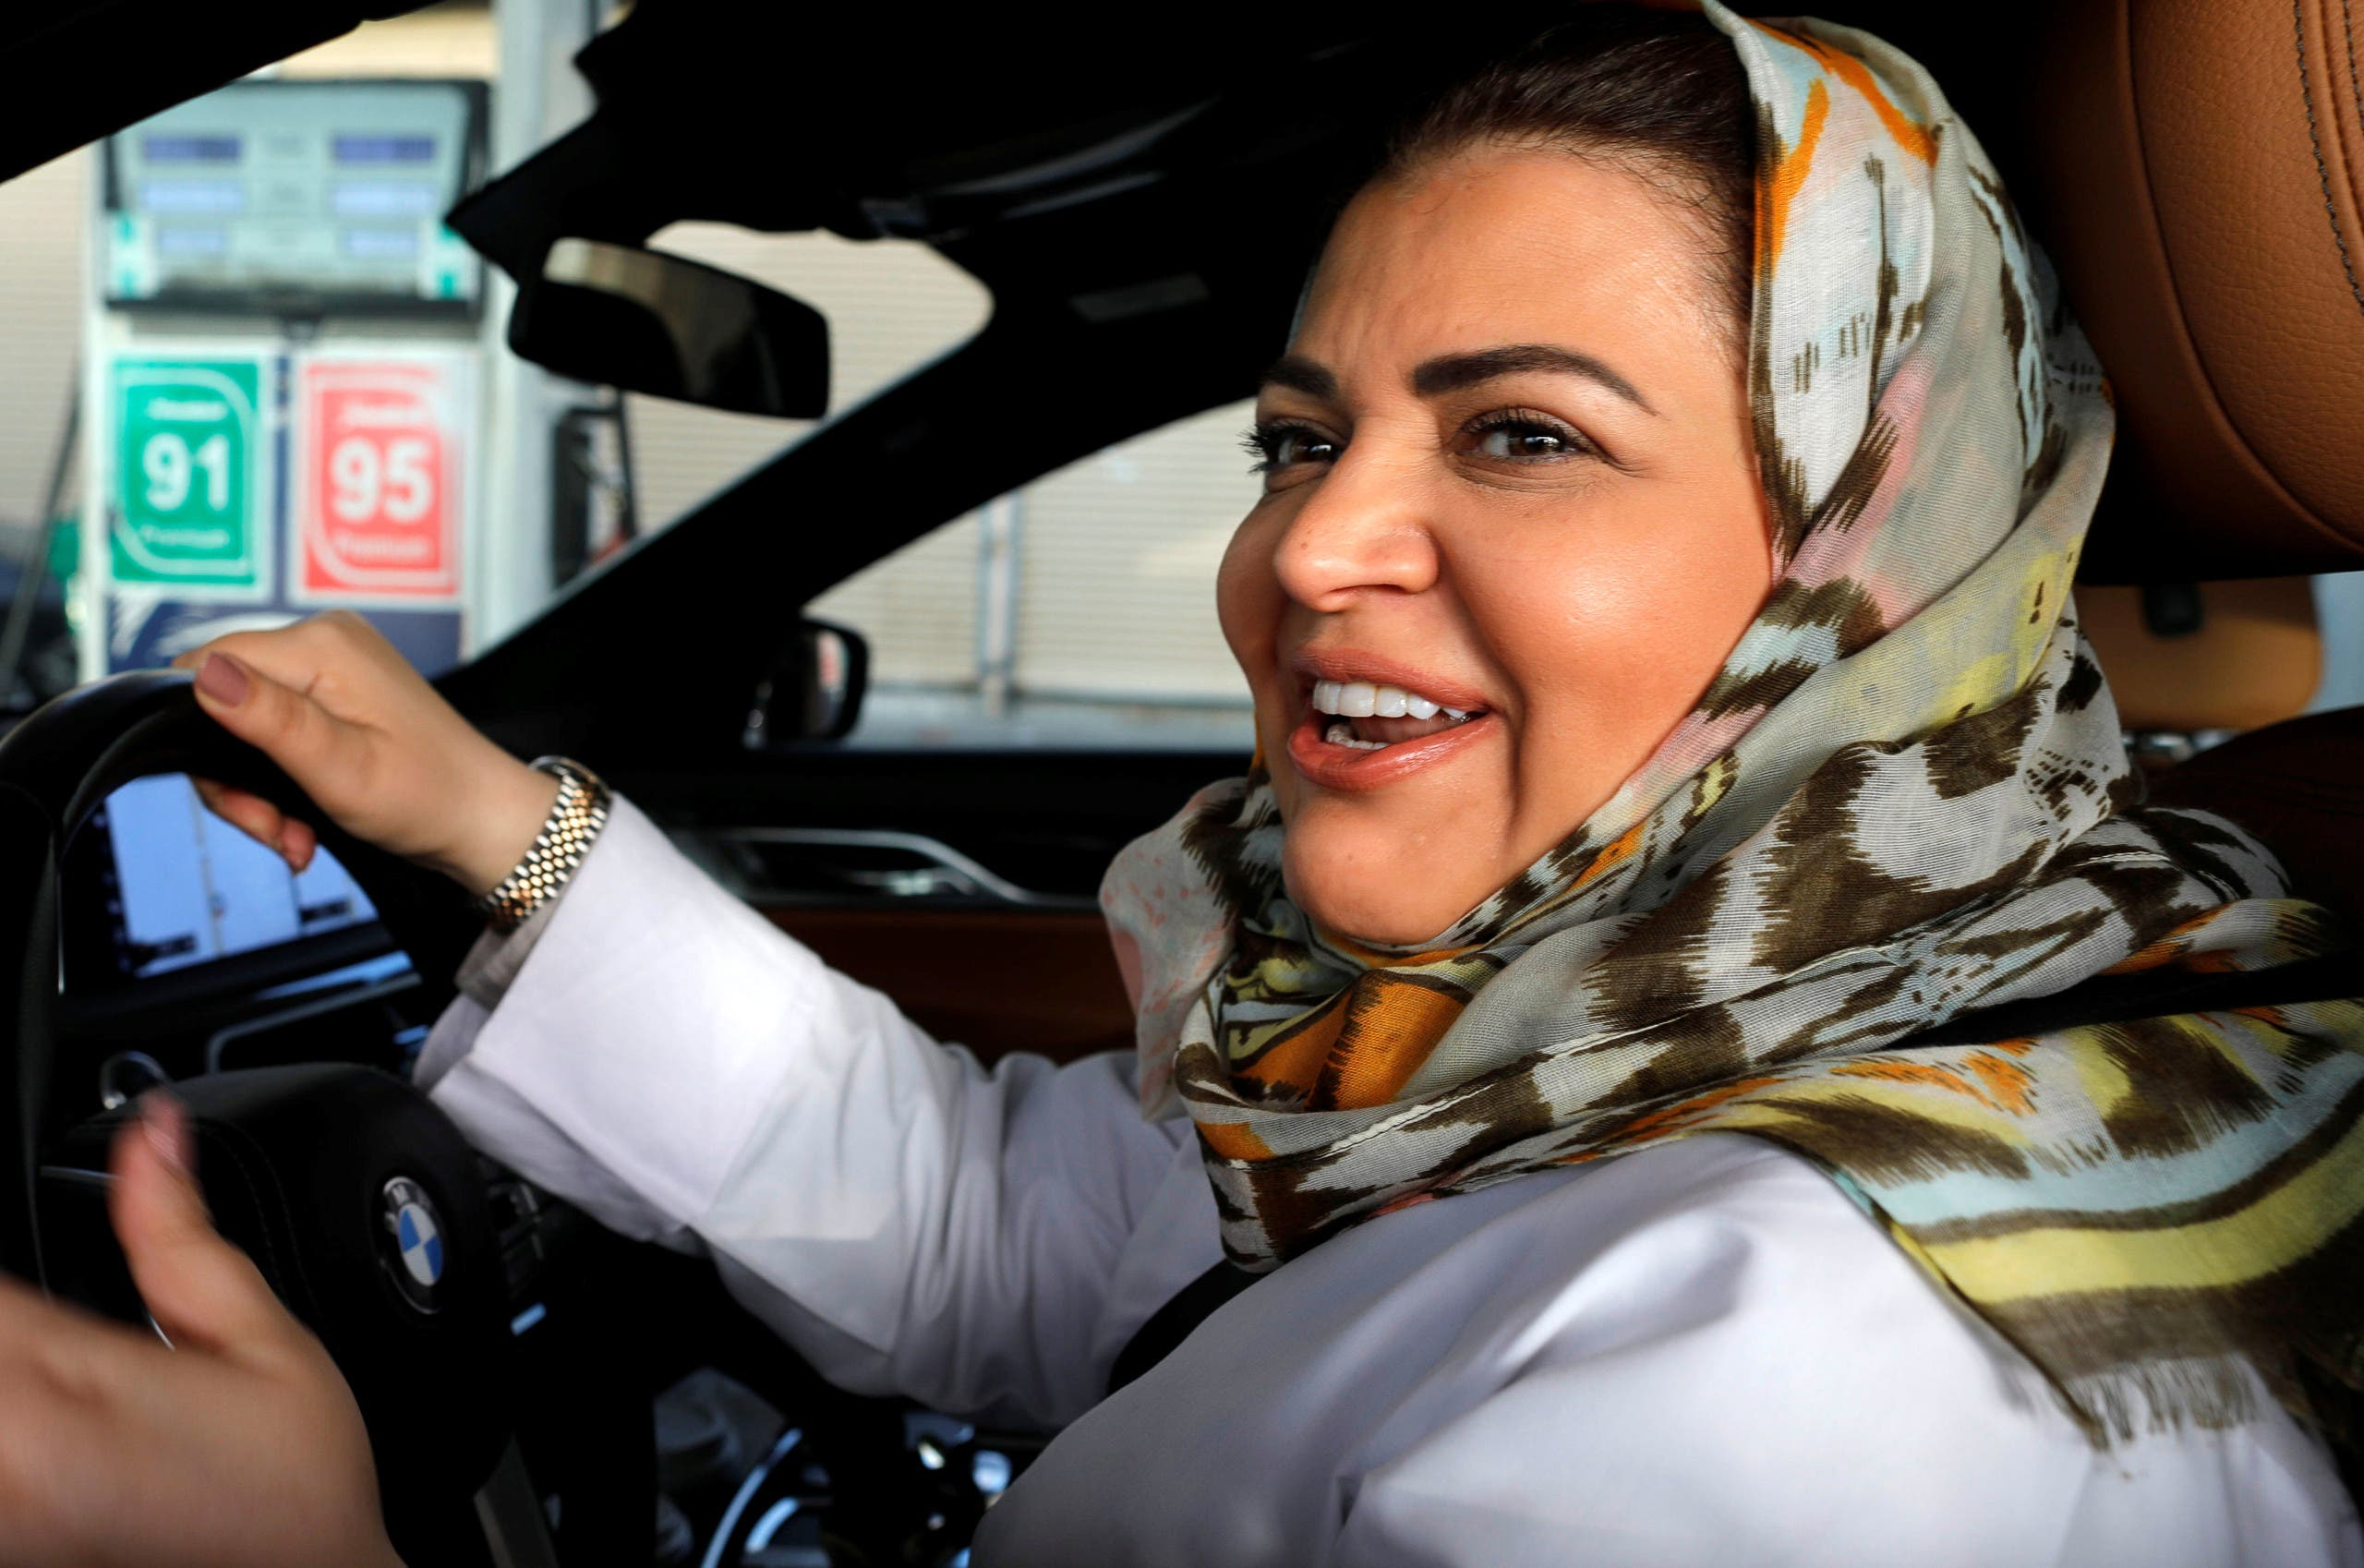 Samira al-Ghamdi, a practicing psychologist, smiles while making a stop to refuel her car as she drives to work in Jeddah, Saudi Arabia June 24, 2018. (Reuters)